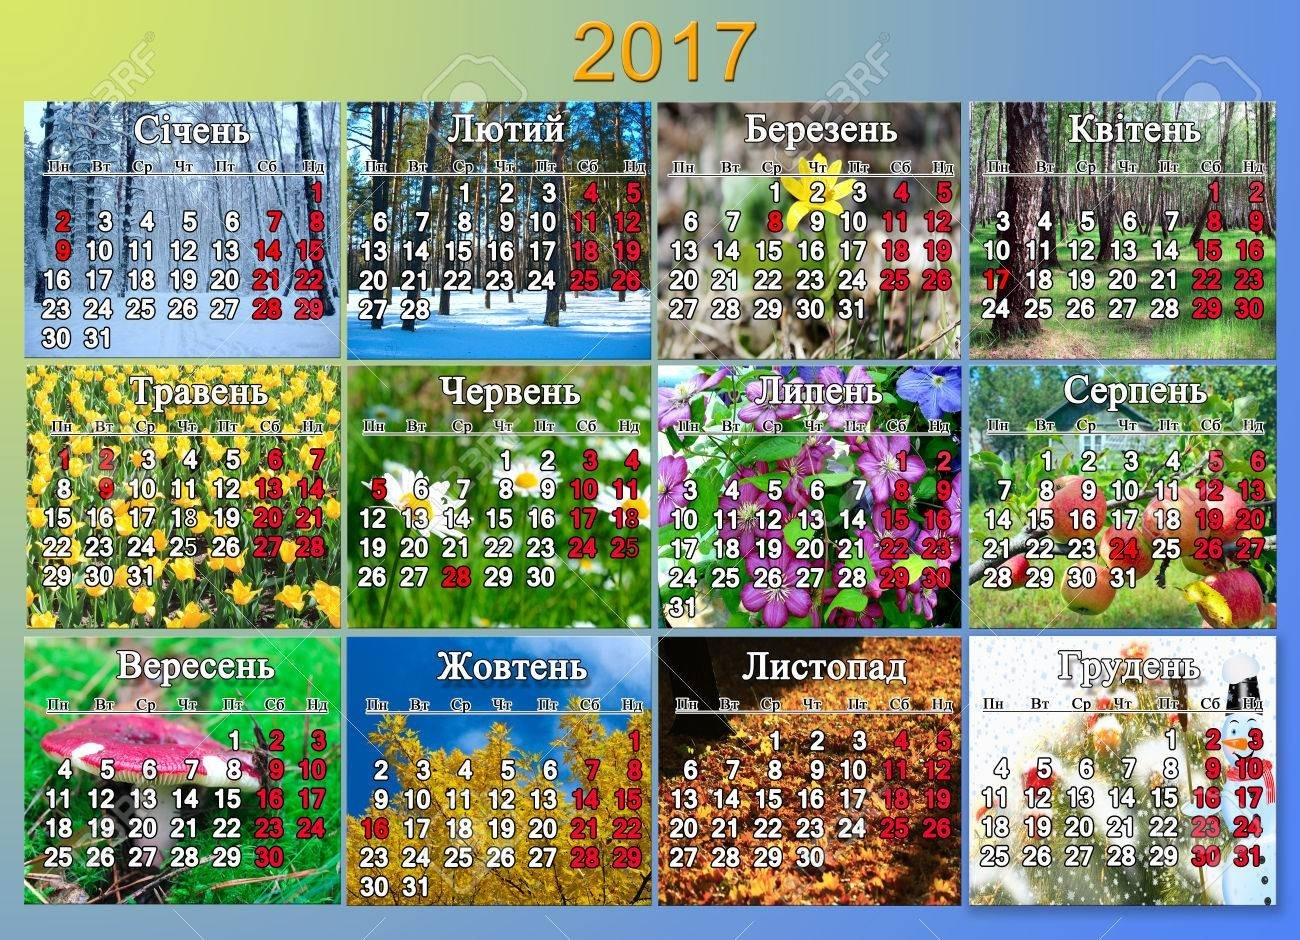 Calendar For 2017 With Indicating National Holidays In Ukrainian..-Calendar Indicating The Holidays